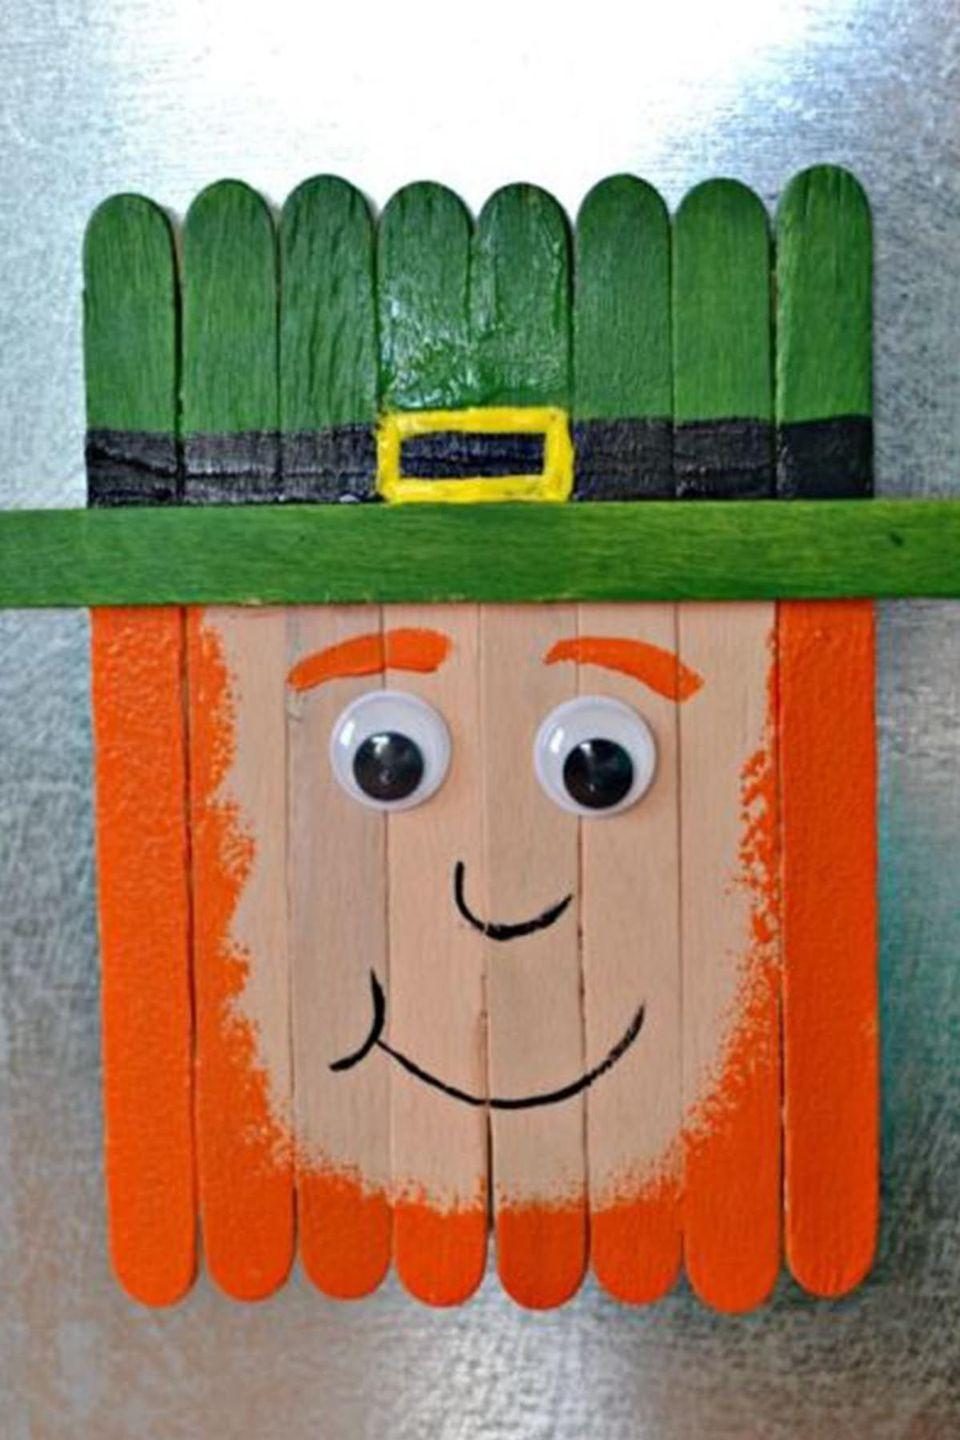 """<p>Popsicle sticks are so versatile when it comes to crafting. For St. Paddy's Day, turn them into <a href=""""https://www.womansday.com/relationships/family-friends/a54141/dad-turns-6-month-old-son-into-a-leprechaun/"""" rel=""""nofollow noopener"""" target=""""_blank"""" data-ylk=""""slk:a leprechaun"""" class=""""link rapid-noclick-resp"""">a leprechaun</a> magnet in just a few simple steps.</p><p><em>Get the tutorial at <a href=""""http://thisgirlslifeblog.com/2015/03/popsicle-stick-leprechaun-magnet.html"""" rel=""""nofollow noopener"""" target=""""_blank"""" data-ylk=""""slk:This Girl's Life"""" class=""""link rapid-noclick-resp"""">This Girl's Life</a>.</em> </p>"""